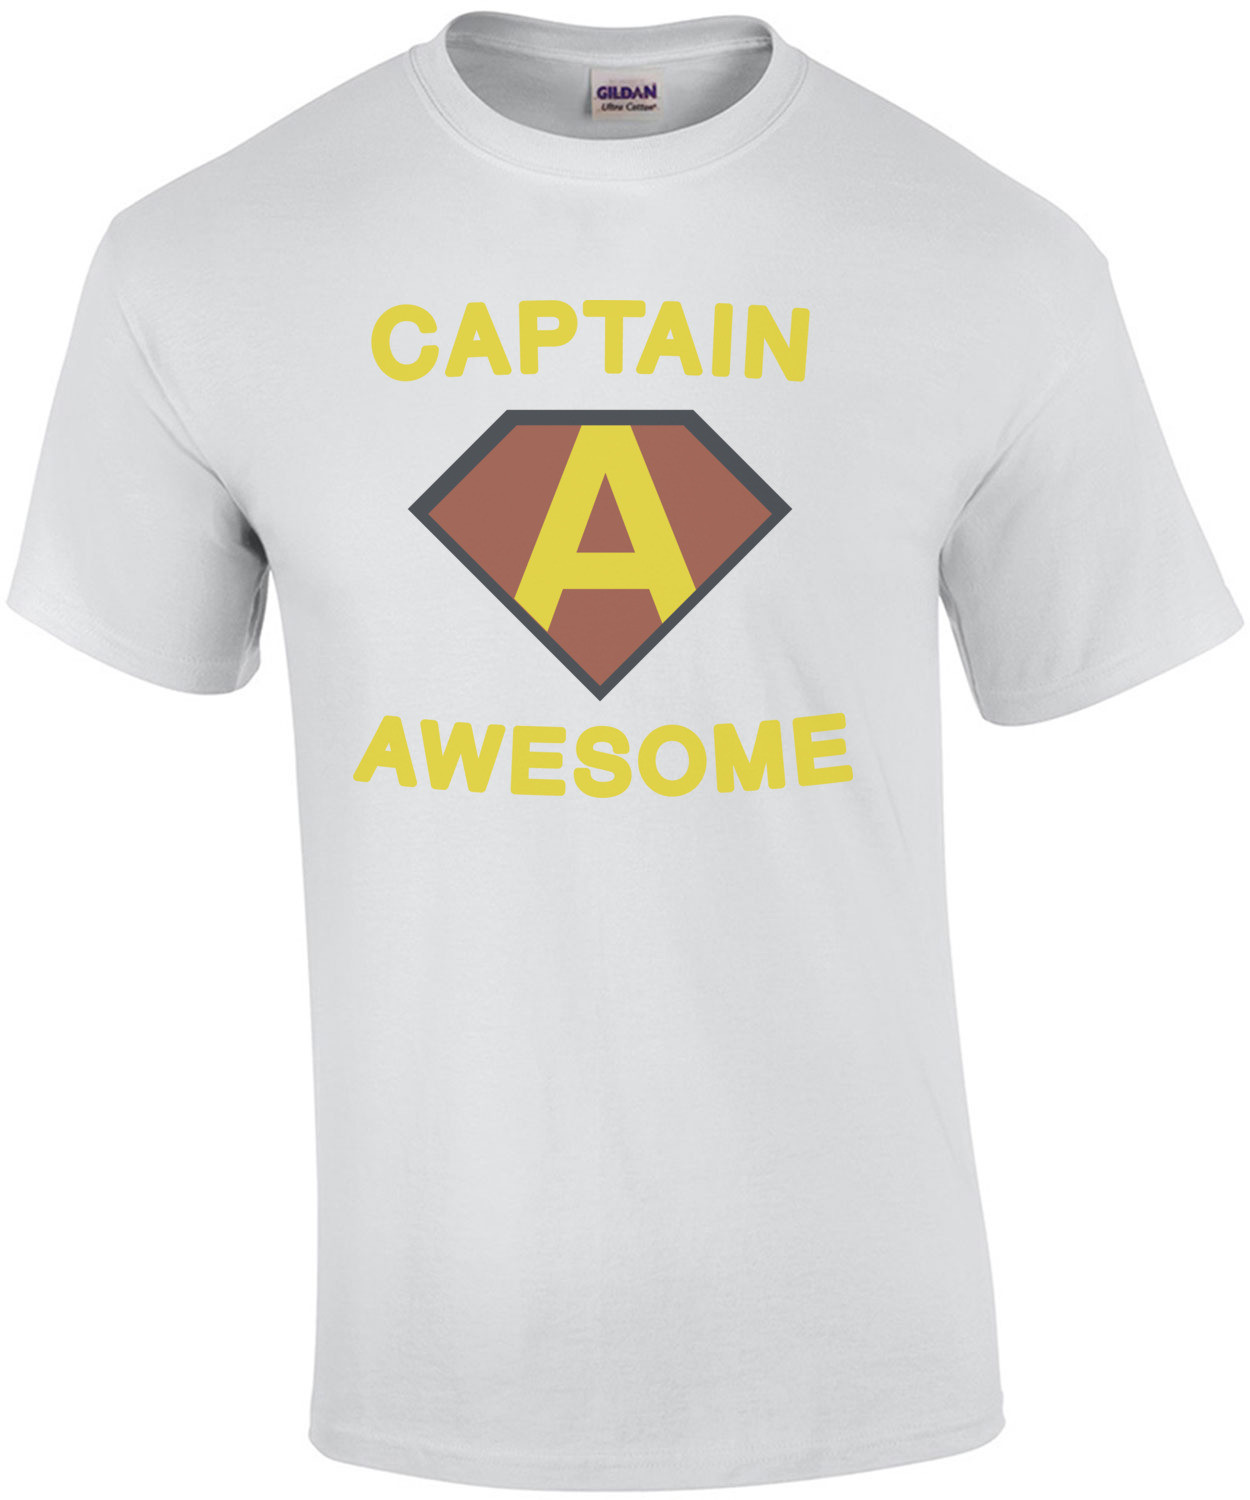 Captain Awesome. Funny T-Shirt